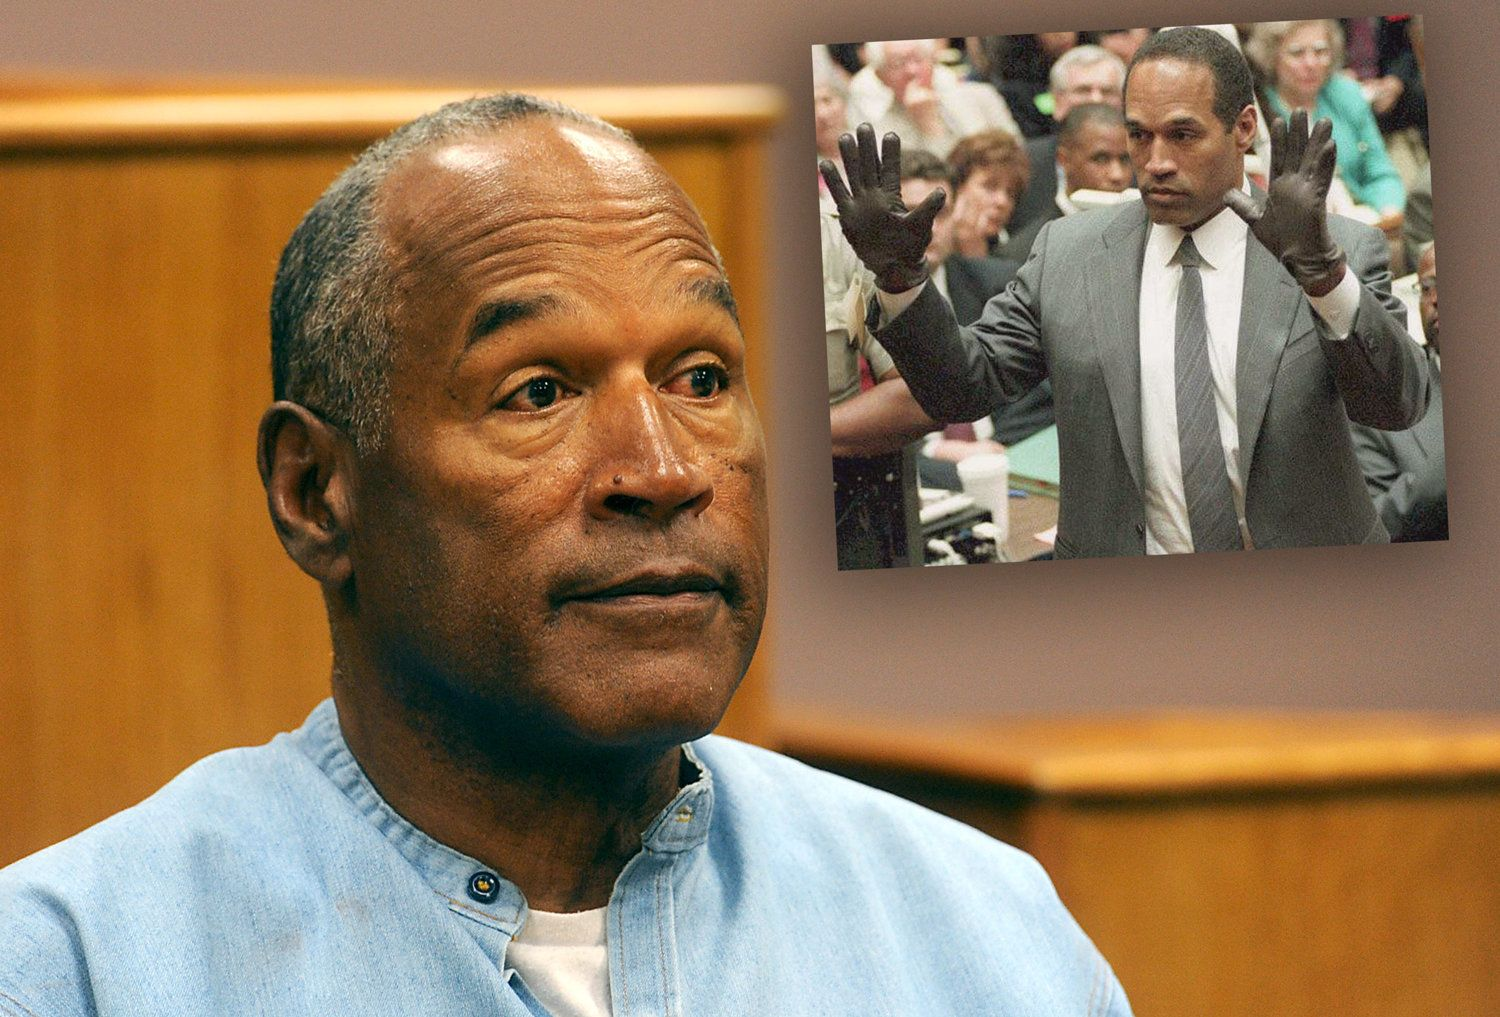 Watch OJ Simpson's Parole Hearing Live Here